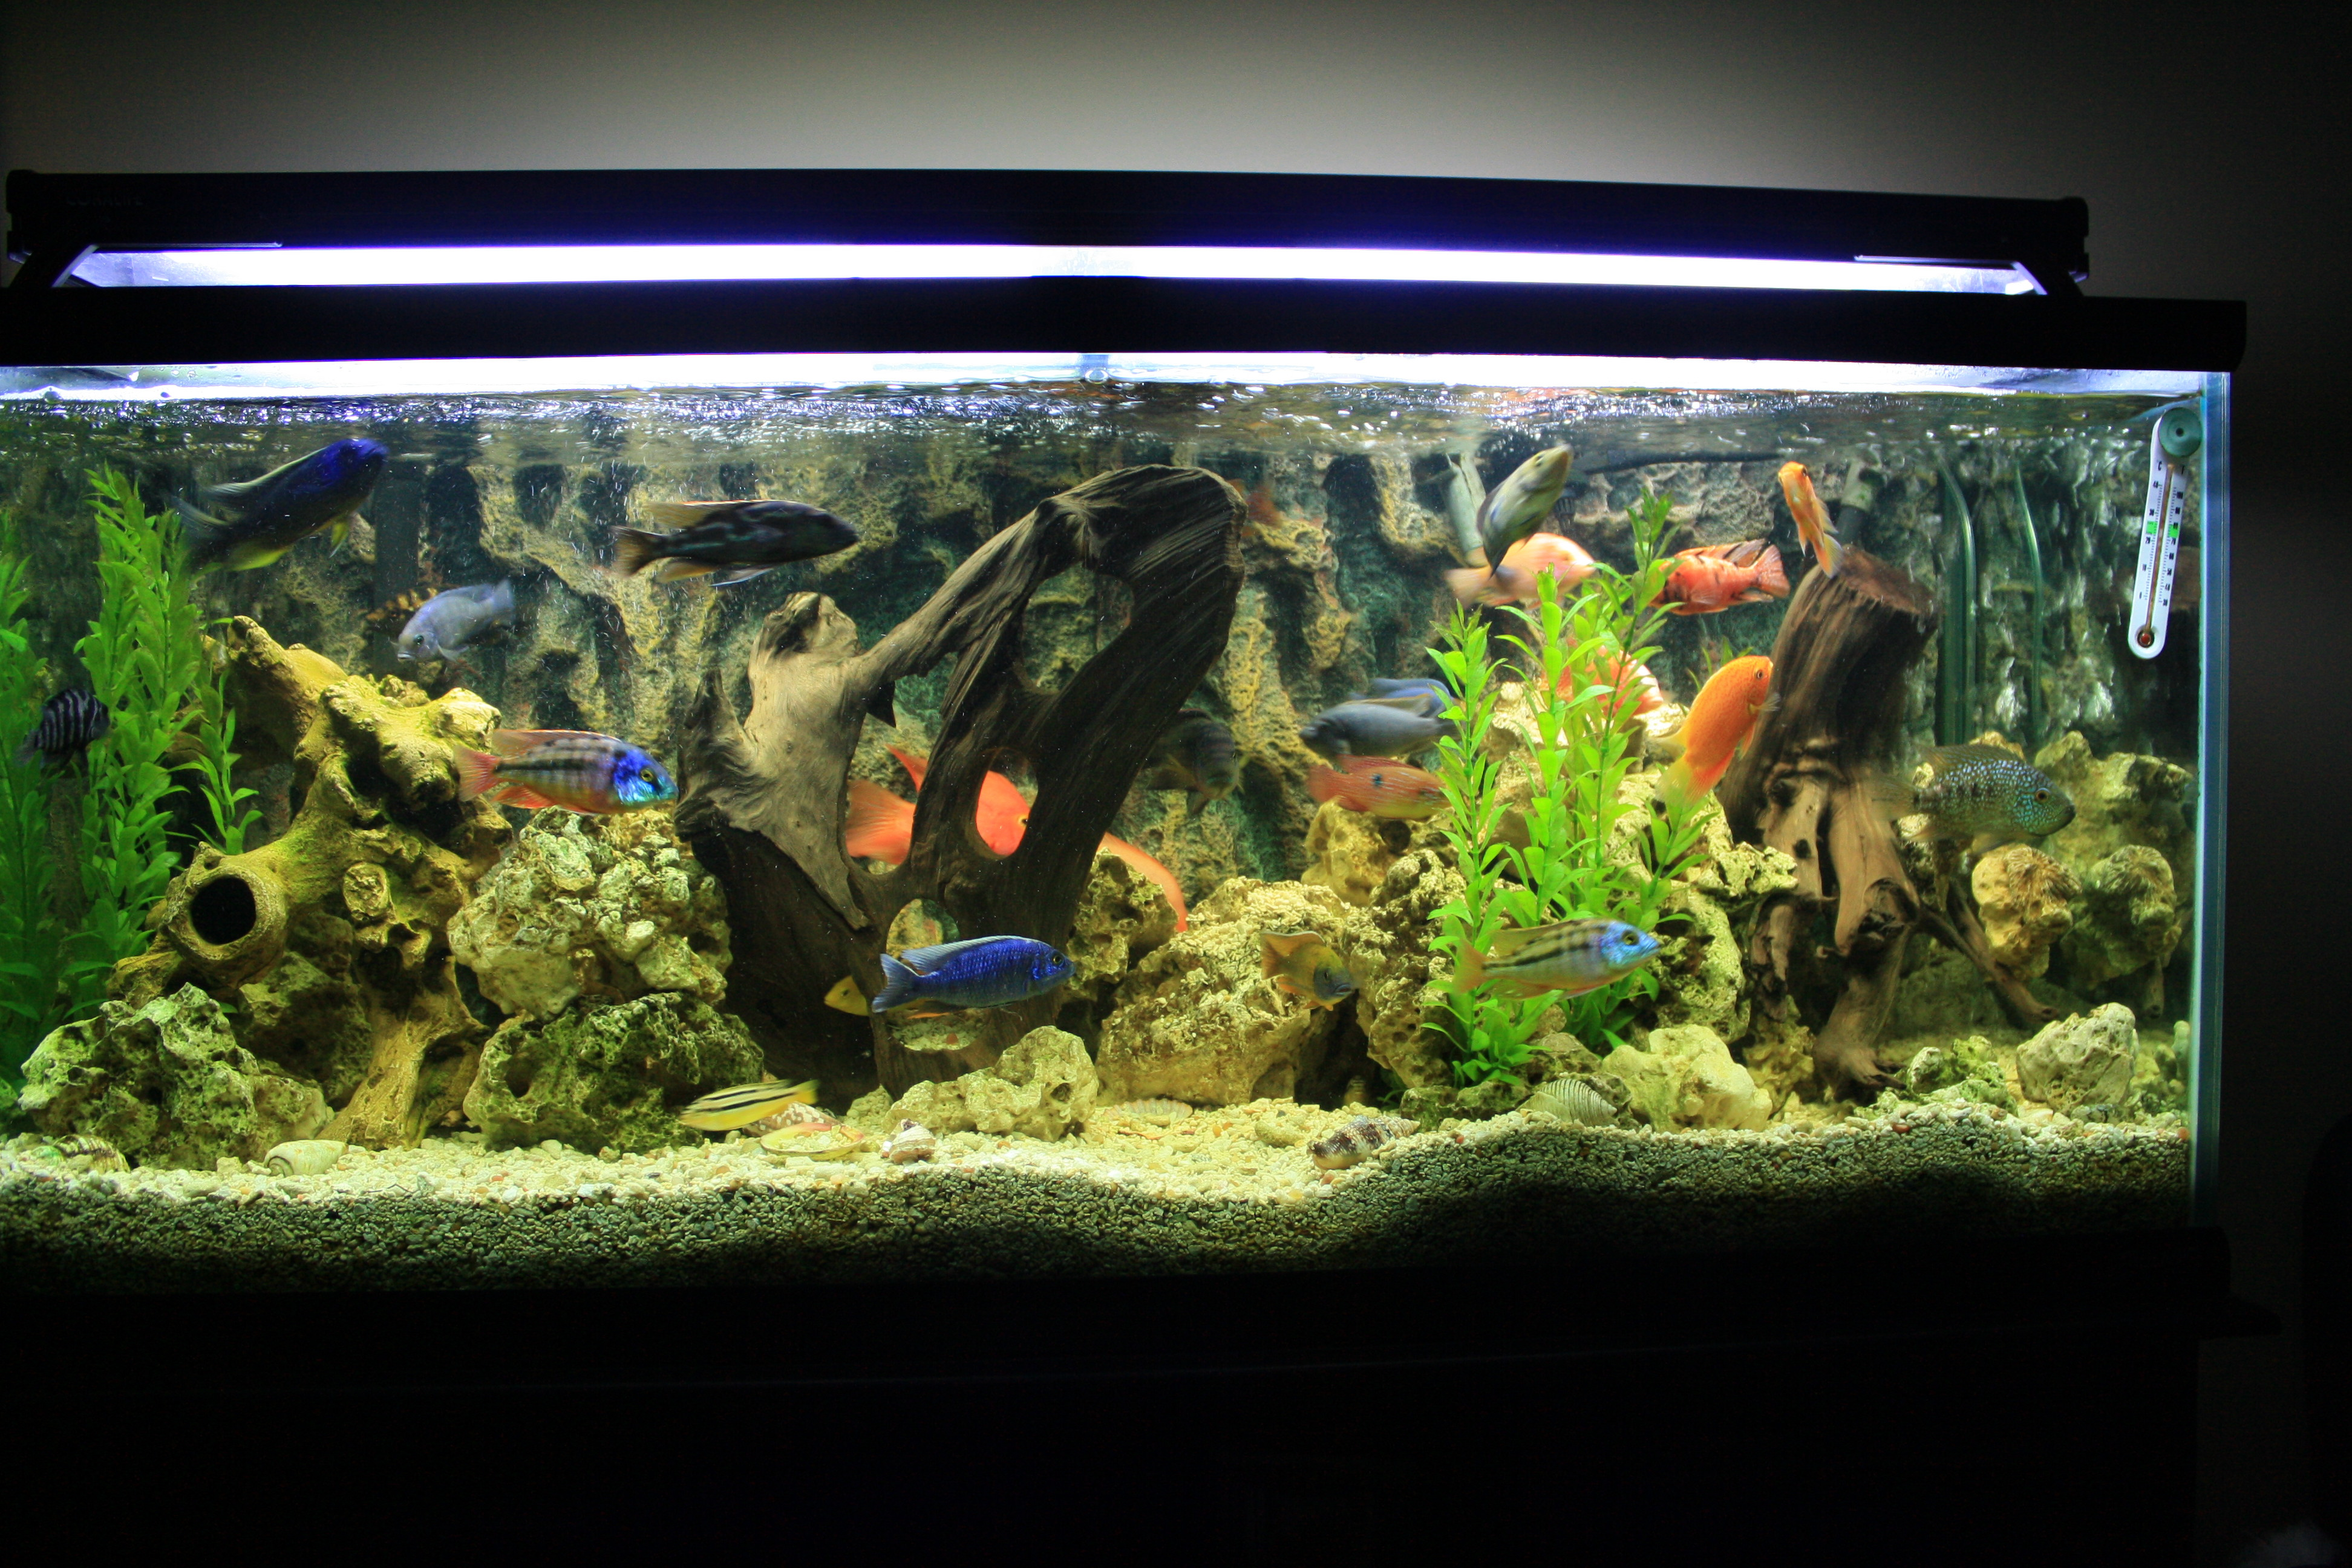 Fish tank movie 48x12x20 community tank images for Best community fish